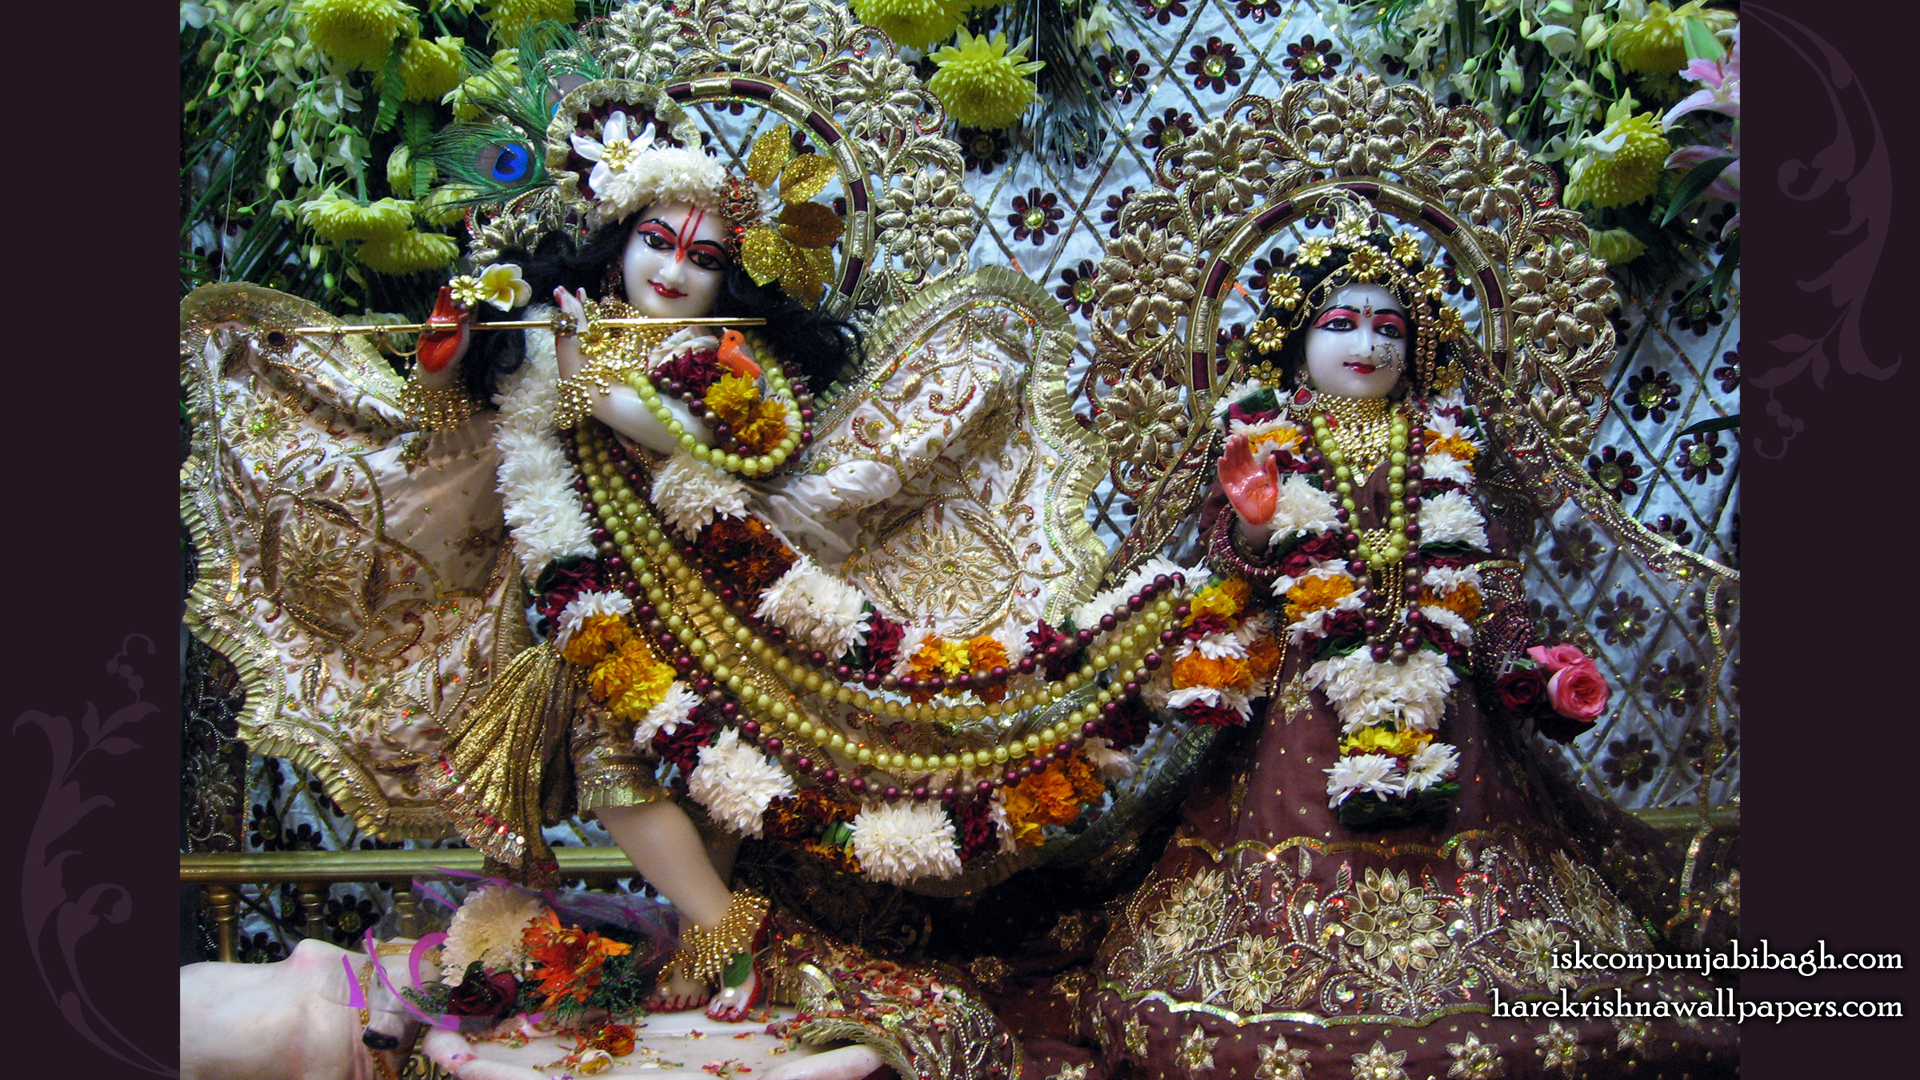 Sri Sri Radha Radhikaraman Wallpaper (001) Size 1920x1080 Download